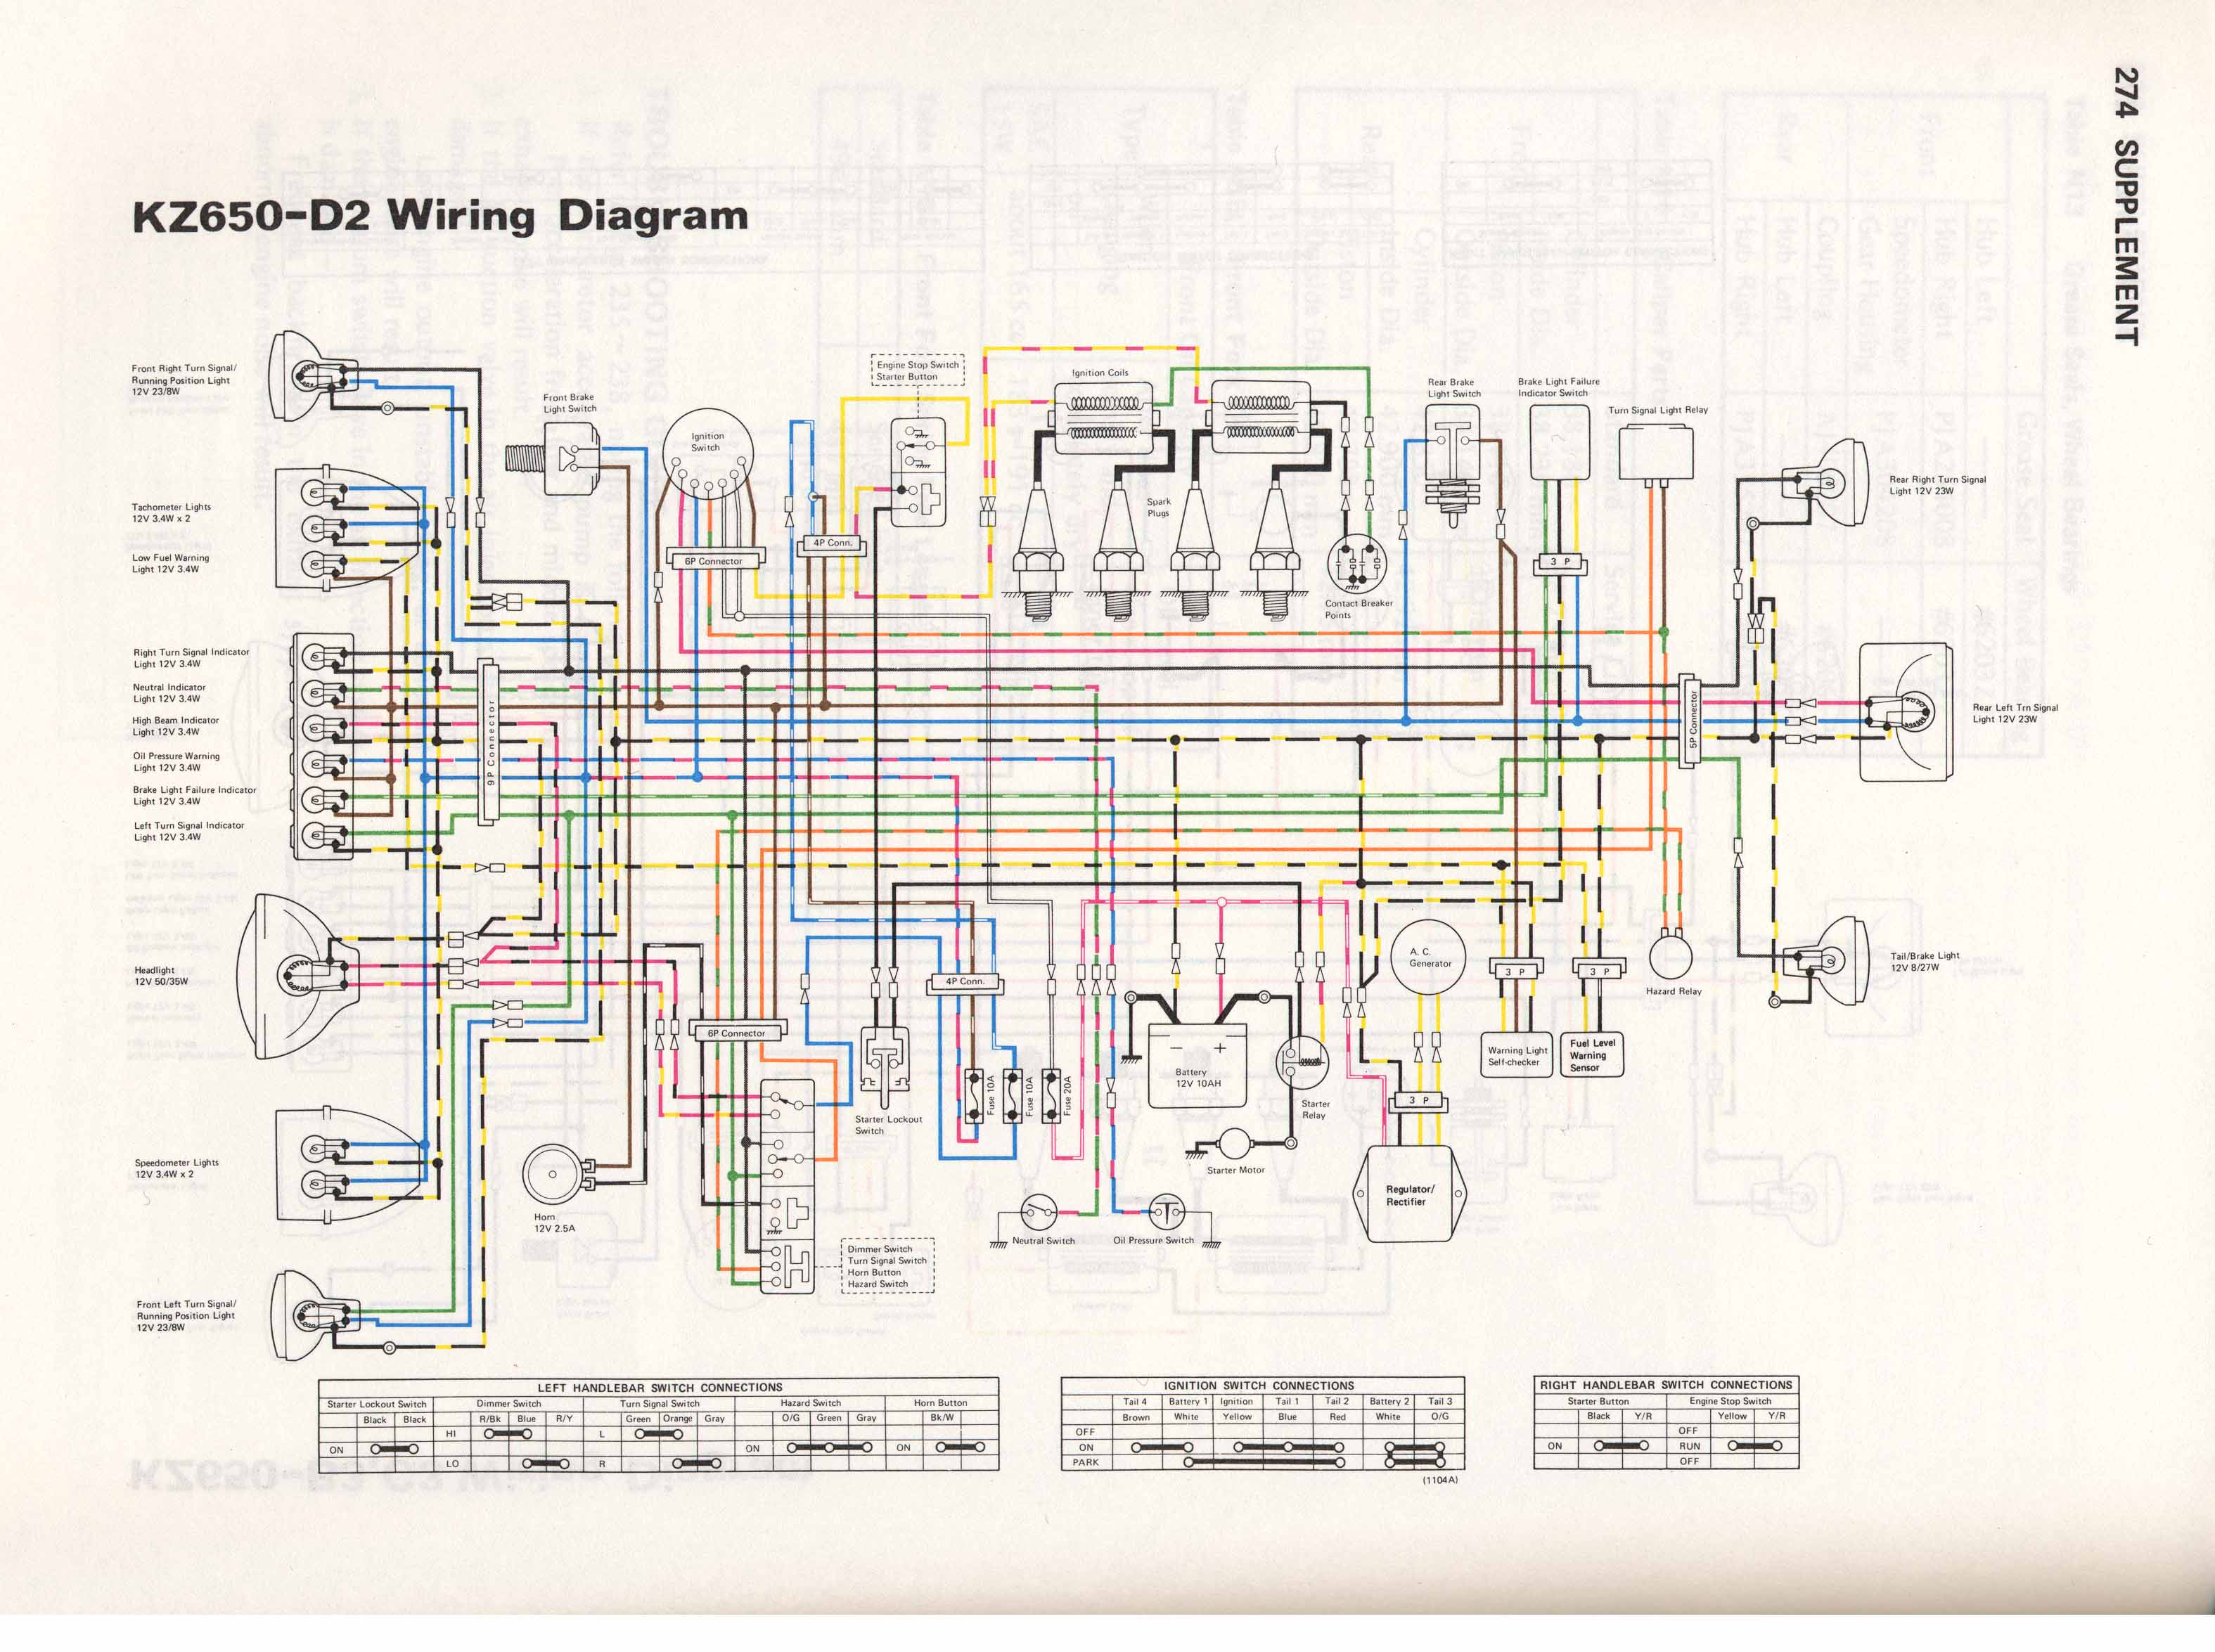 1998 Mcneilus Wiring Diagram Libraries Schematic Diagrams U20222012 Library Rh 89 Codingcommunity